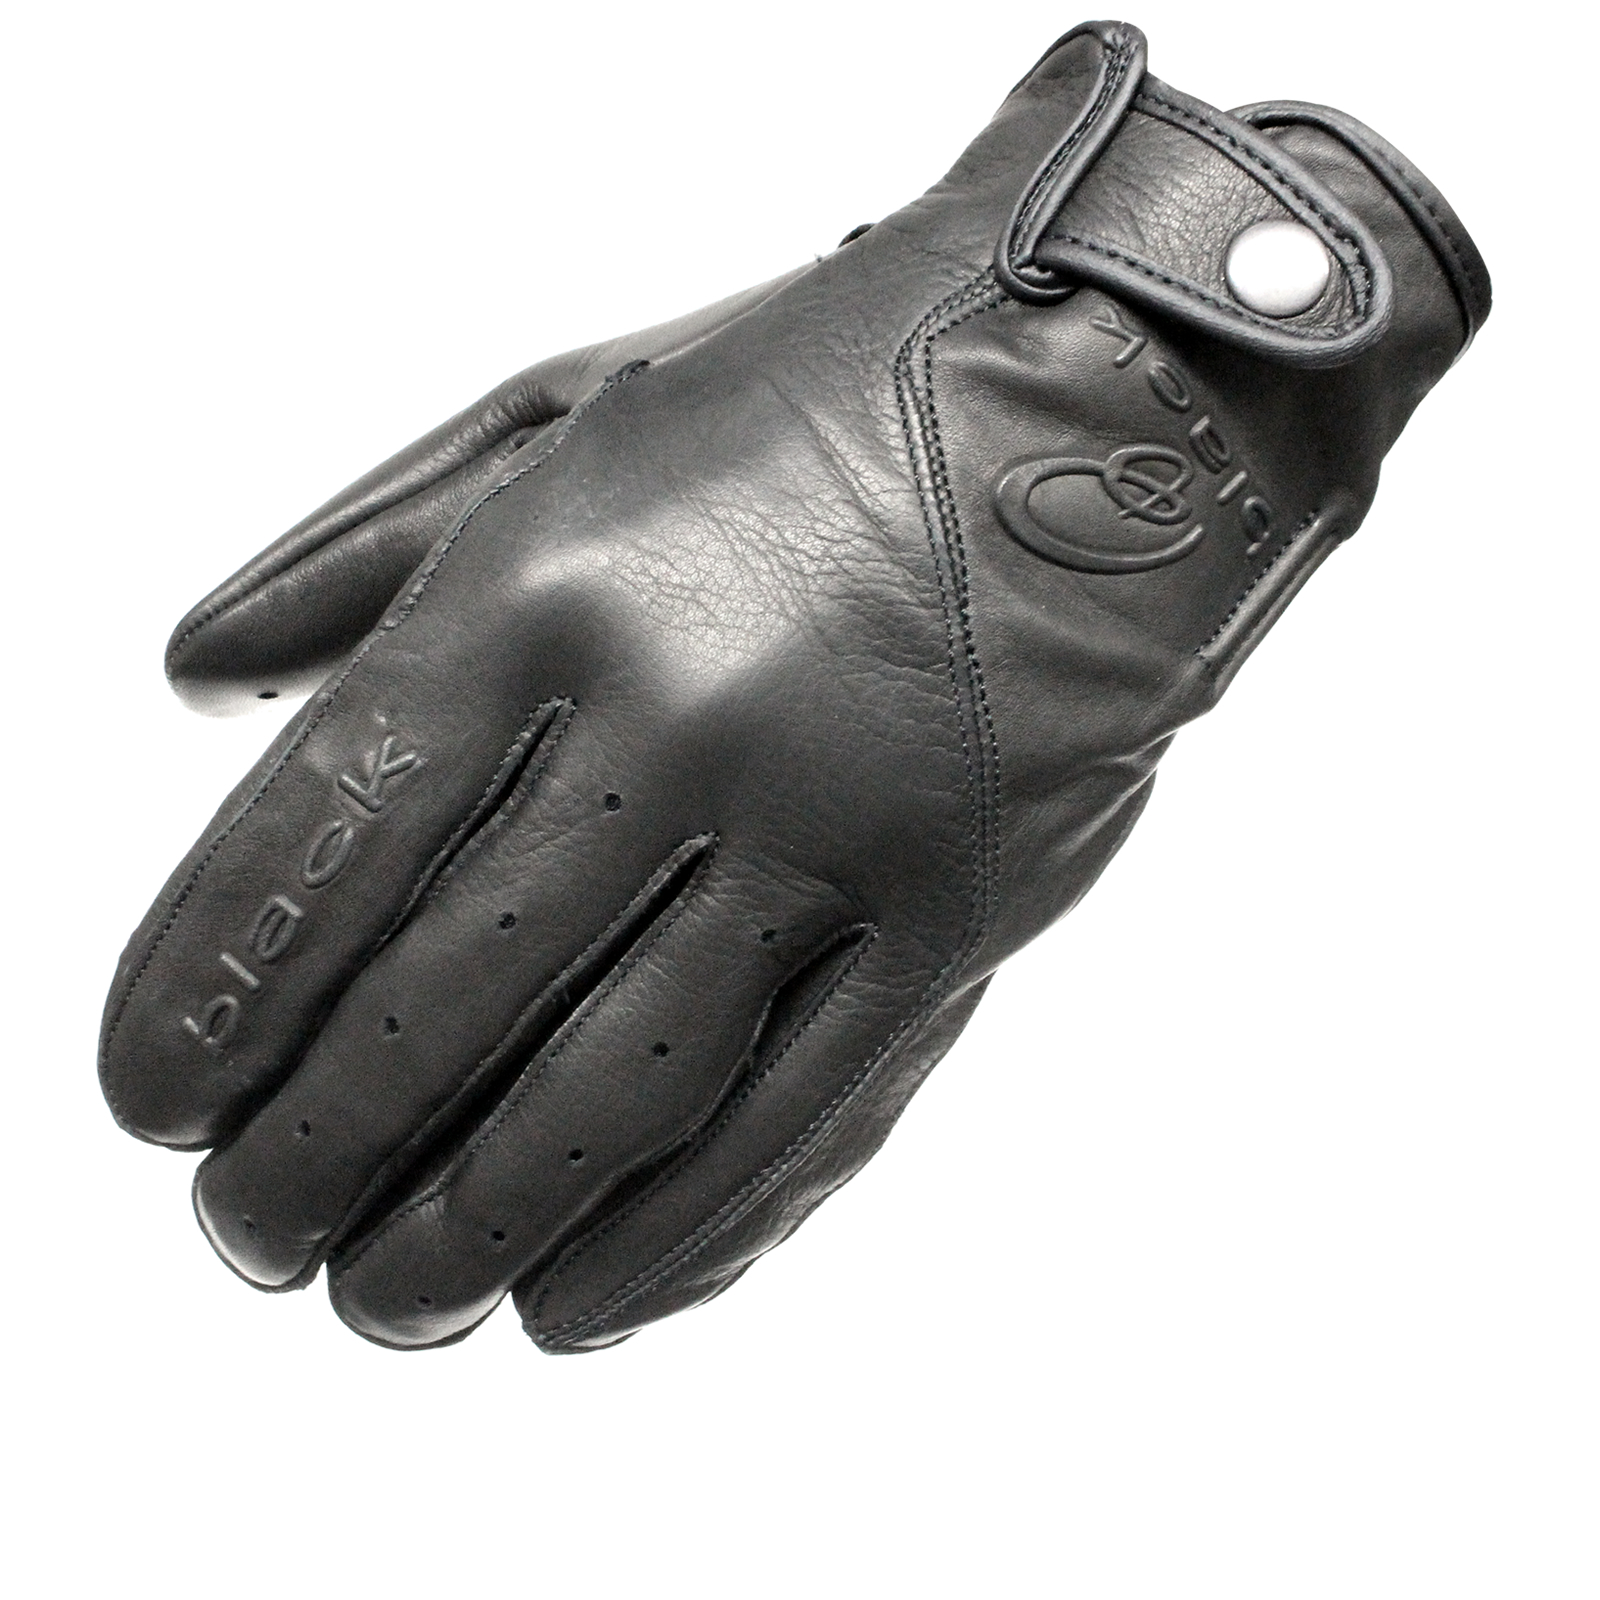 Black static leather classic vintage fashion motorcycle bike gloves ghostbikes enlarged preview